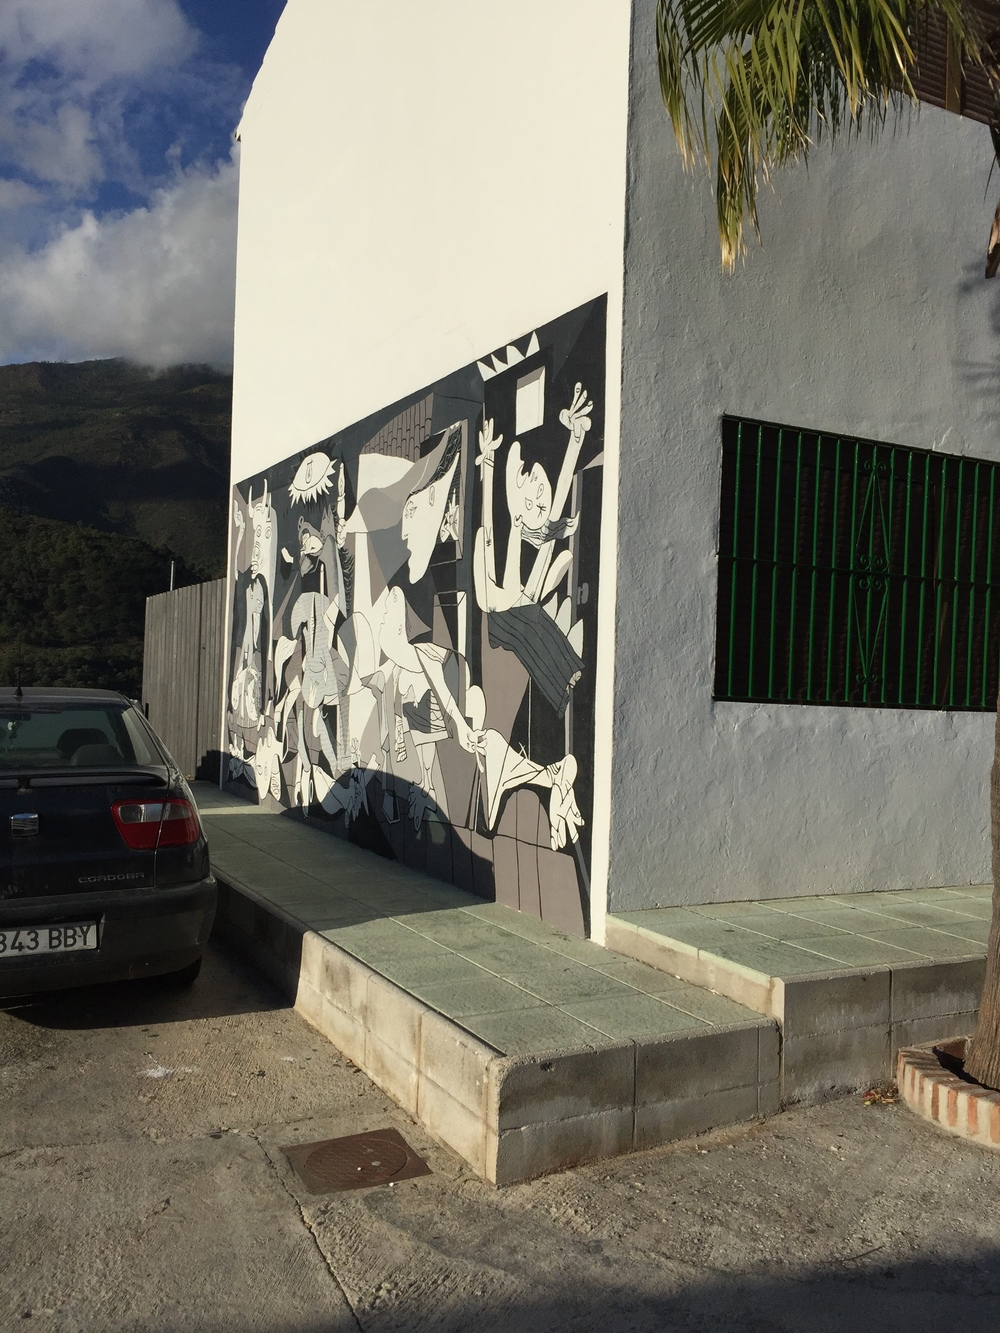 a copy of Picasso's Guernica in a mountain village was a reminder of the power of art to challenge violence